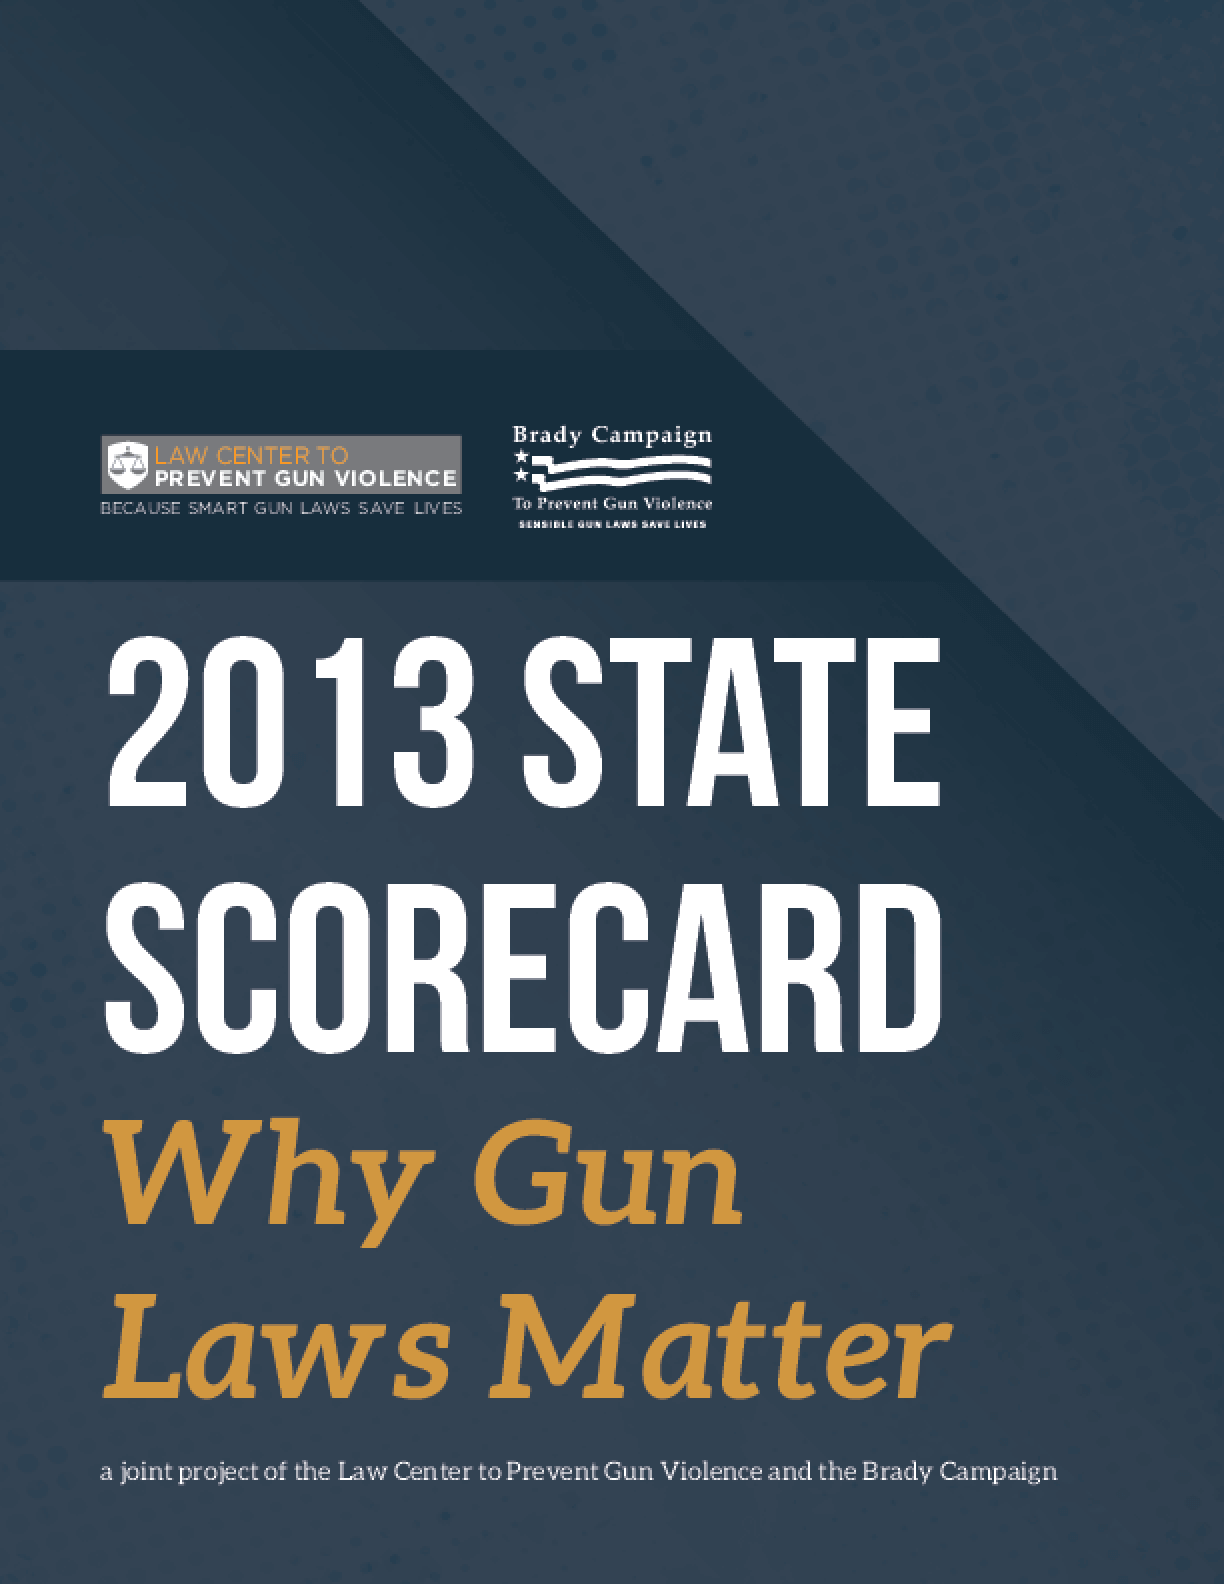 2013 State Scorecard: Why Gun Laws Matter